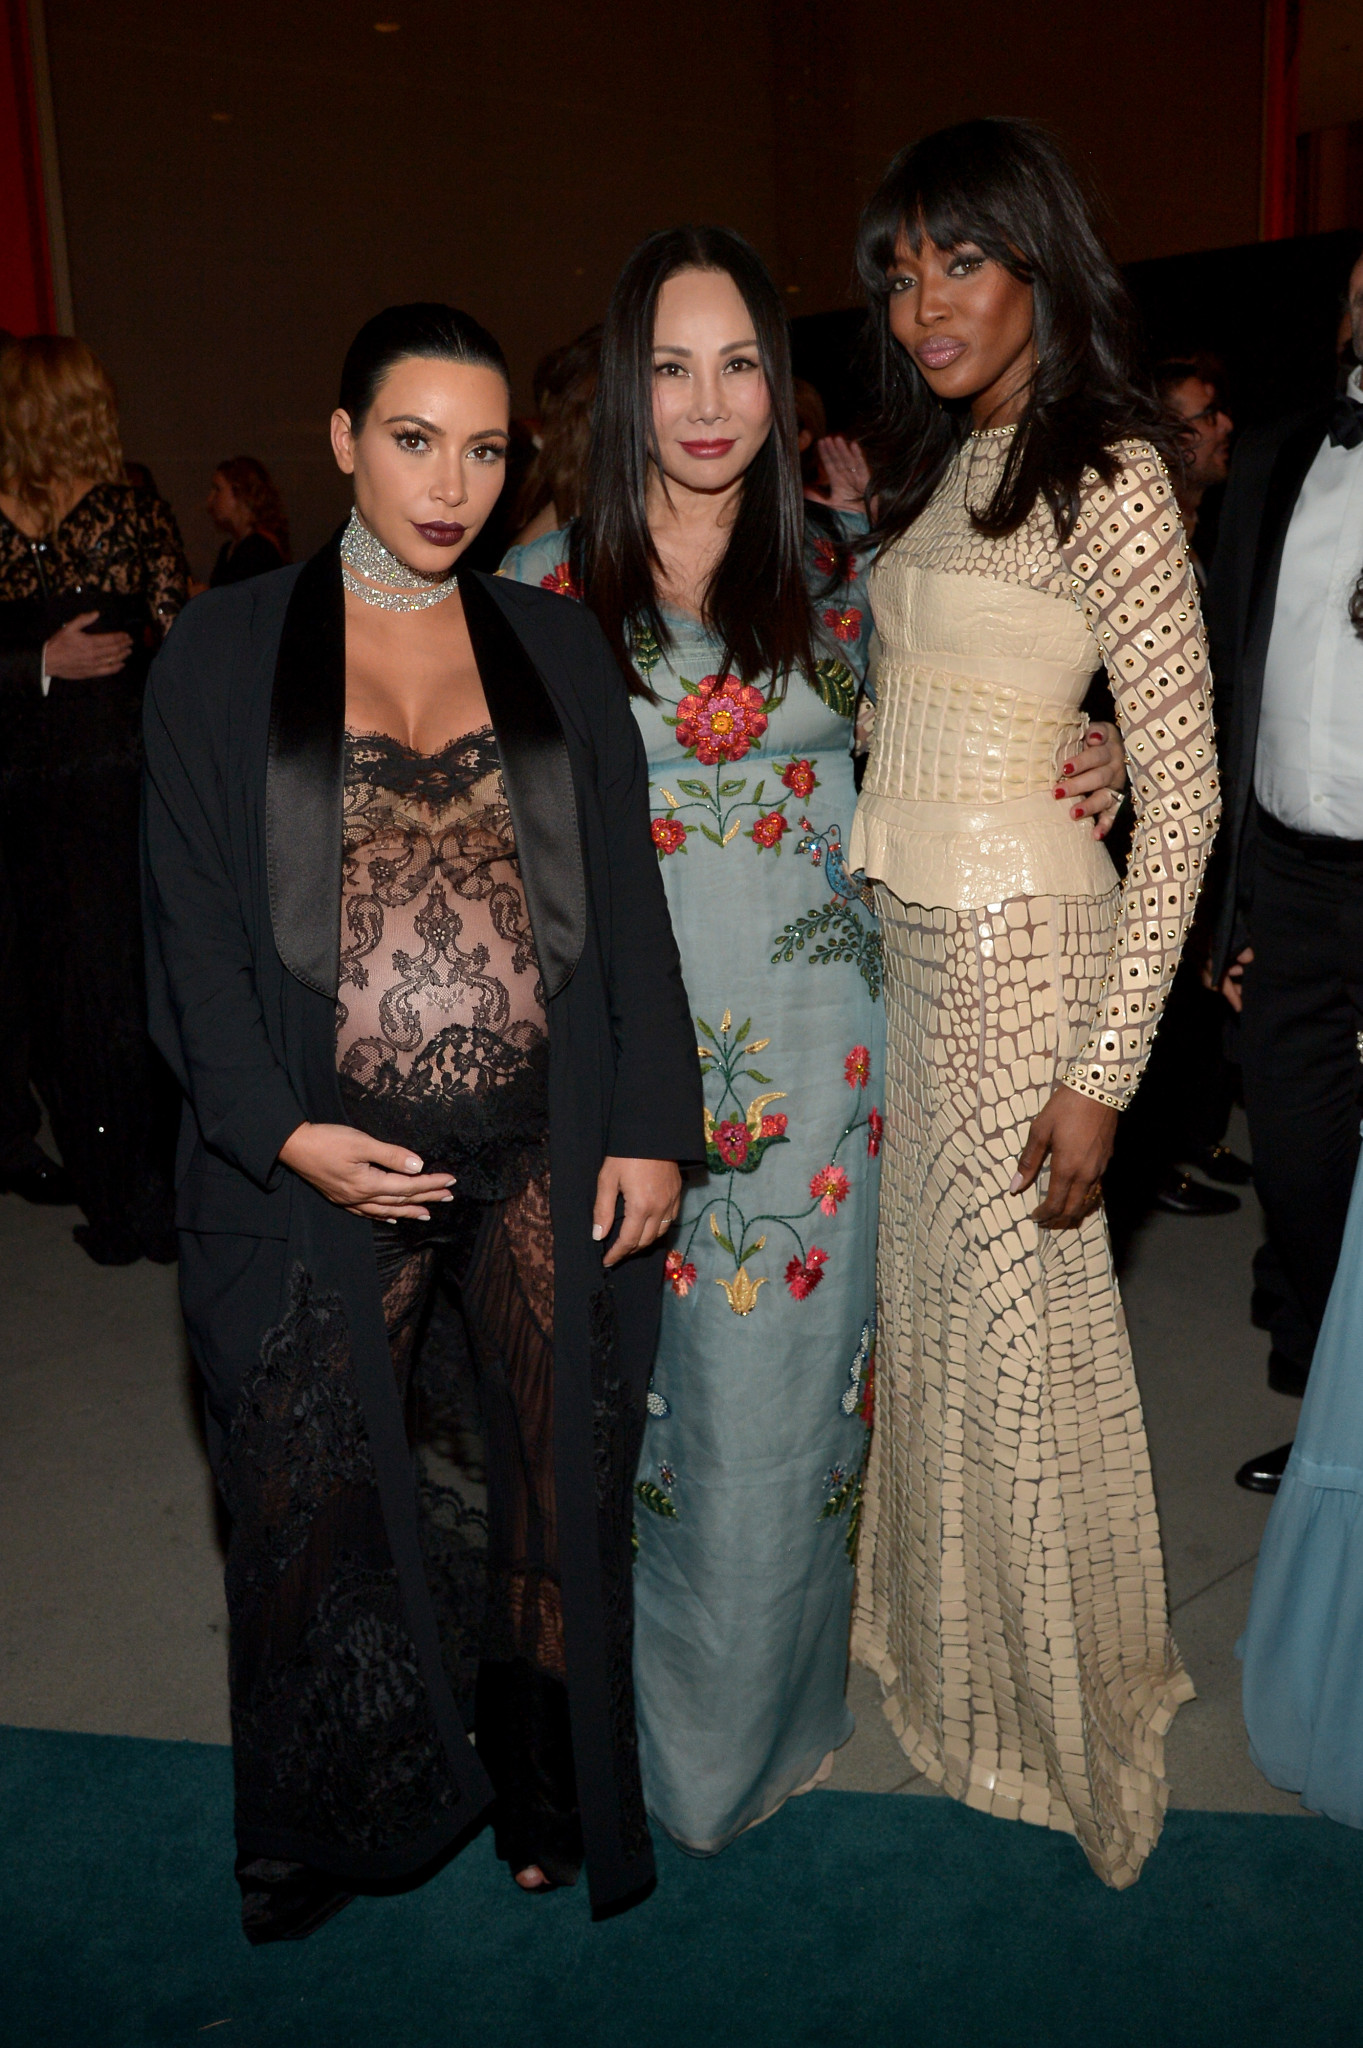 LOS ANGELES, CA - NOVEMBER 07: (L-R) TV personality Kim Kardashian West, LACMA trustee Eva Chow and model Naomi Campbell attend LACMA 2015 Art+Film Gala Honoring James Turrell and Alejandro G Iñárritu, Presented by Gucci at LACMA on November 7, 2015 in Los Angeles, California.  (Photo by Charley Gallay/Getty Images for LACMA)